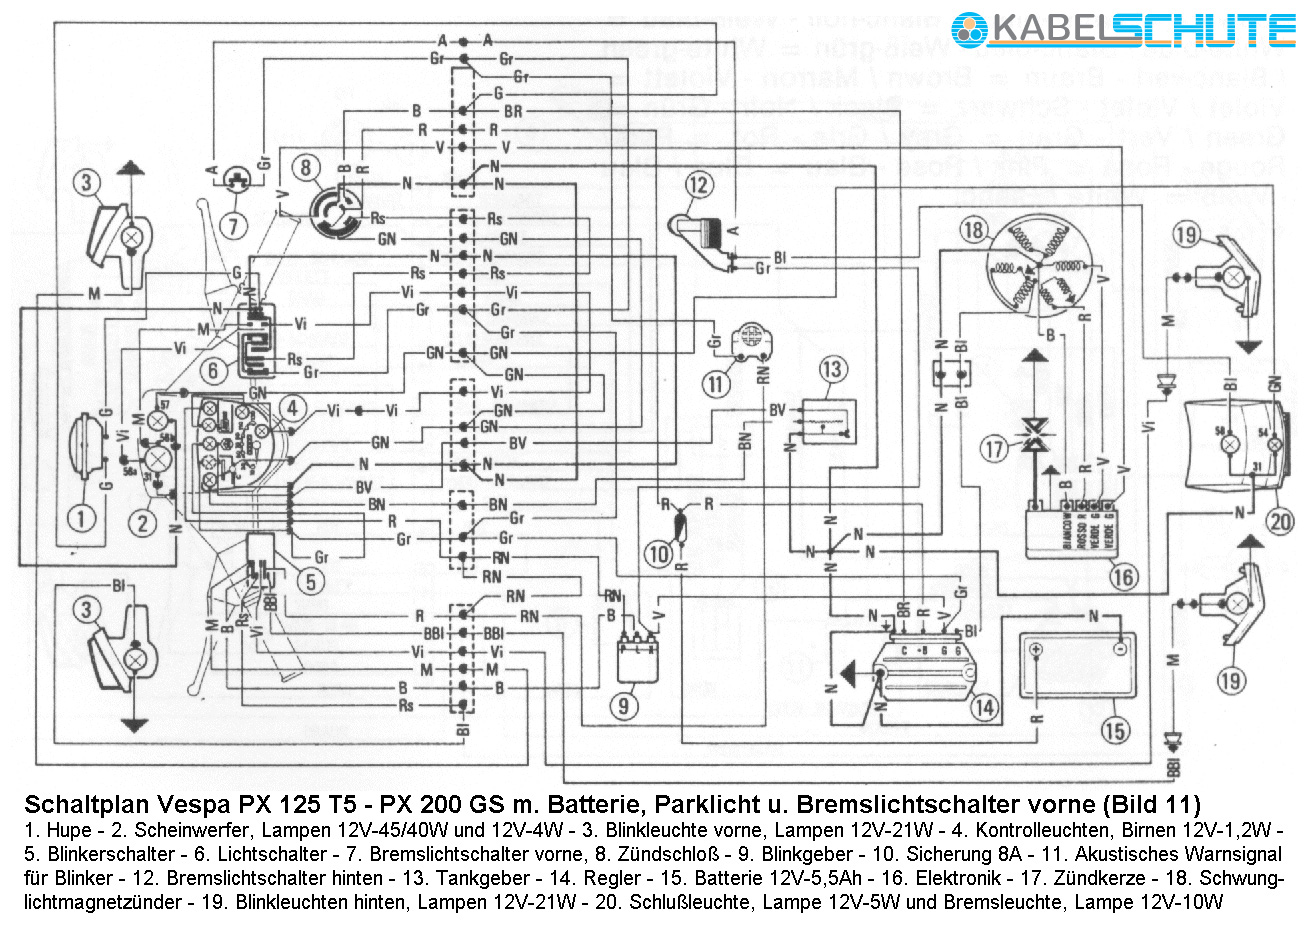 wiring diagrams wiring diagrams rh kabel schute de Vespa GT200 Wiring-Diagram Only Vespa GT200 Ignition Wiring-Diagram